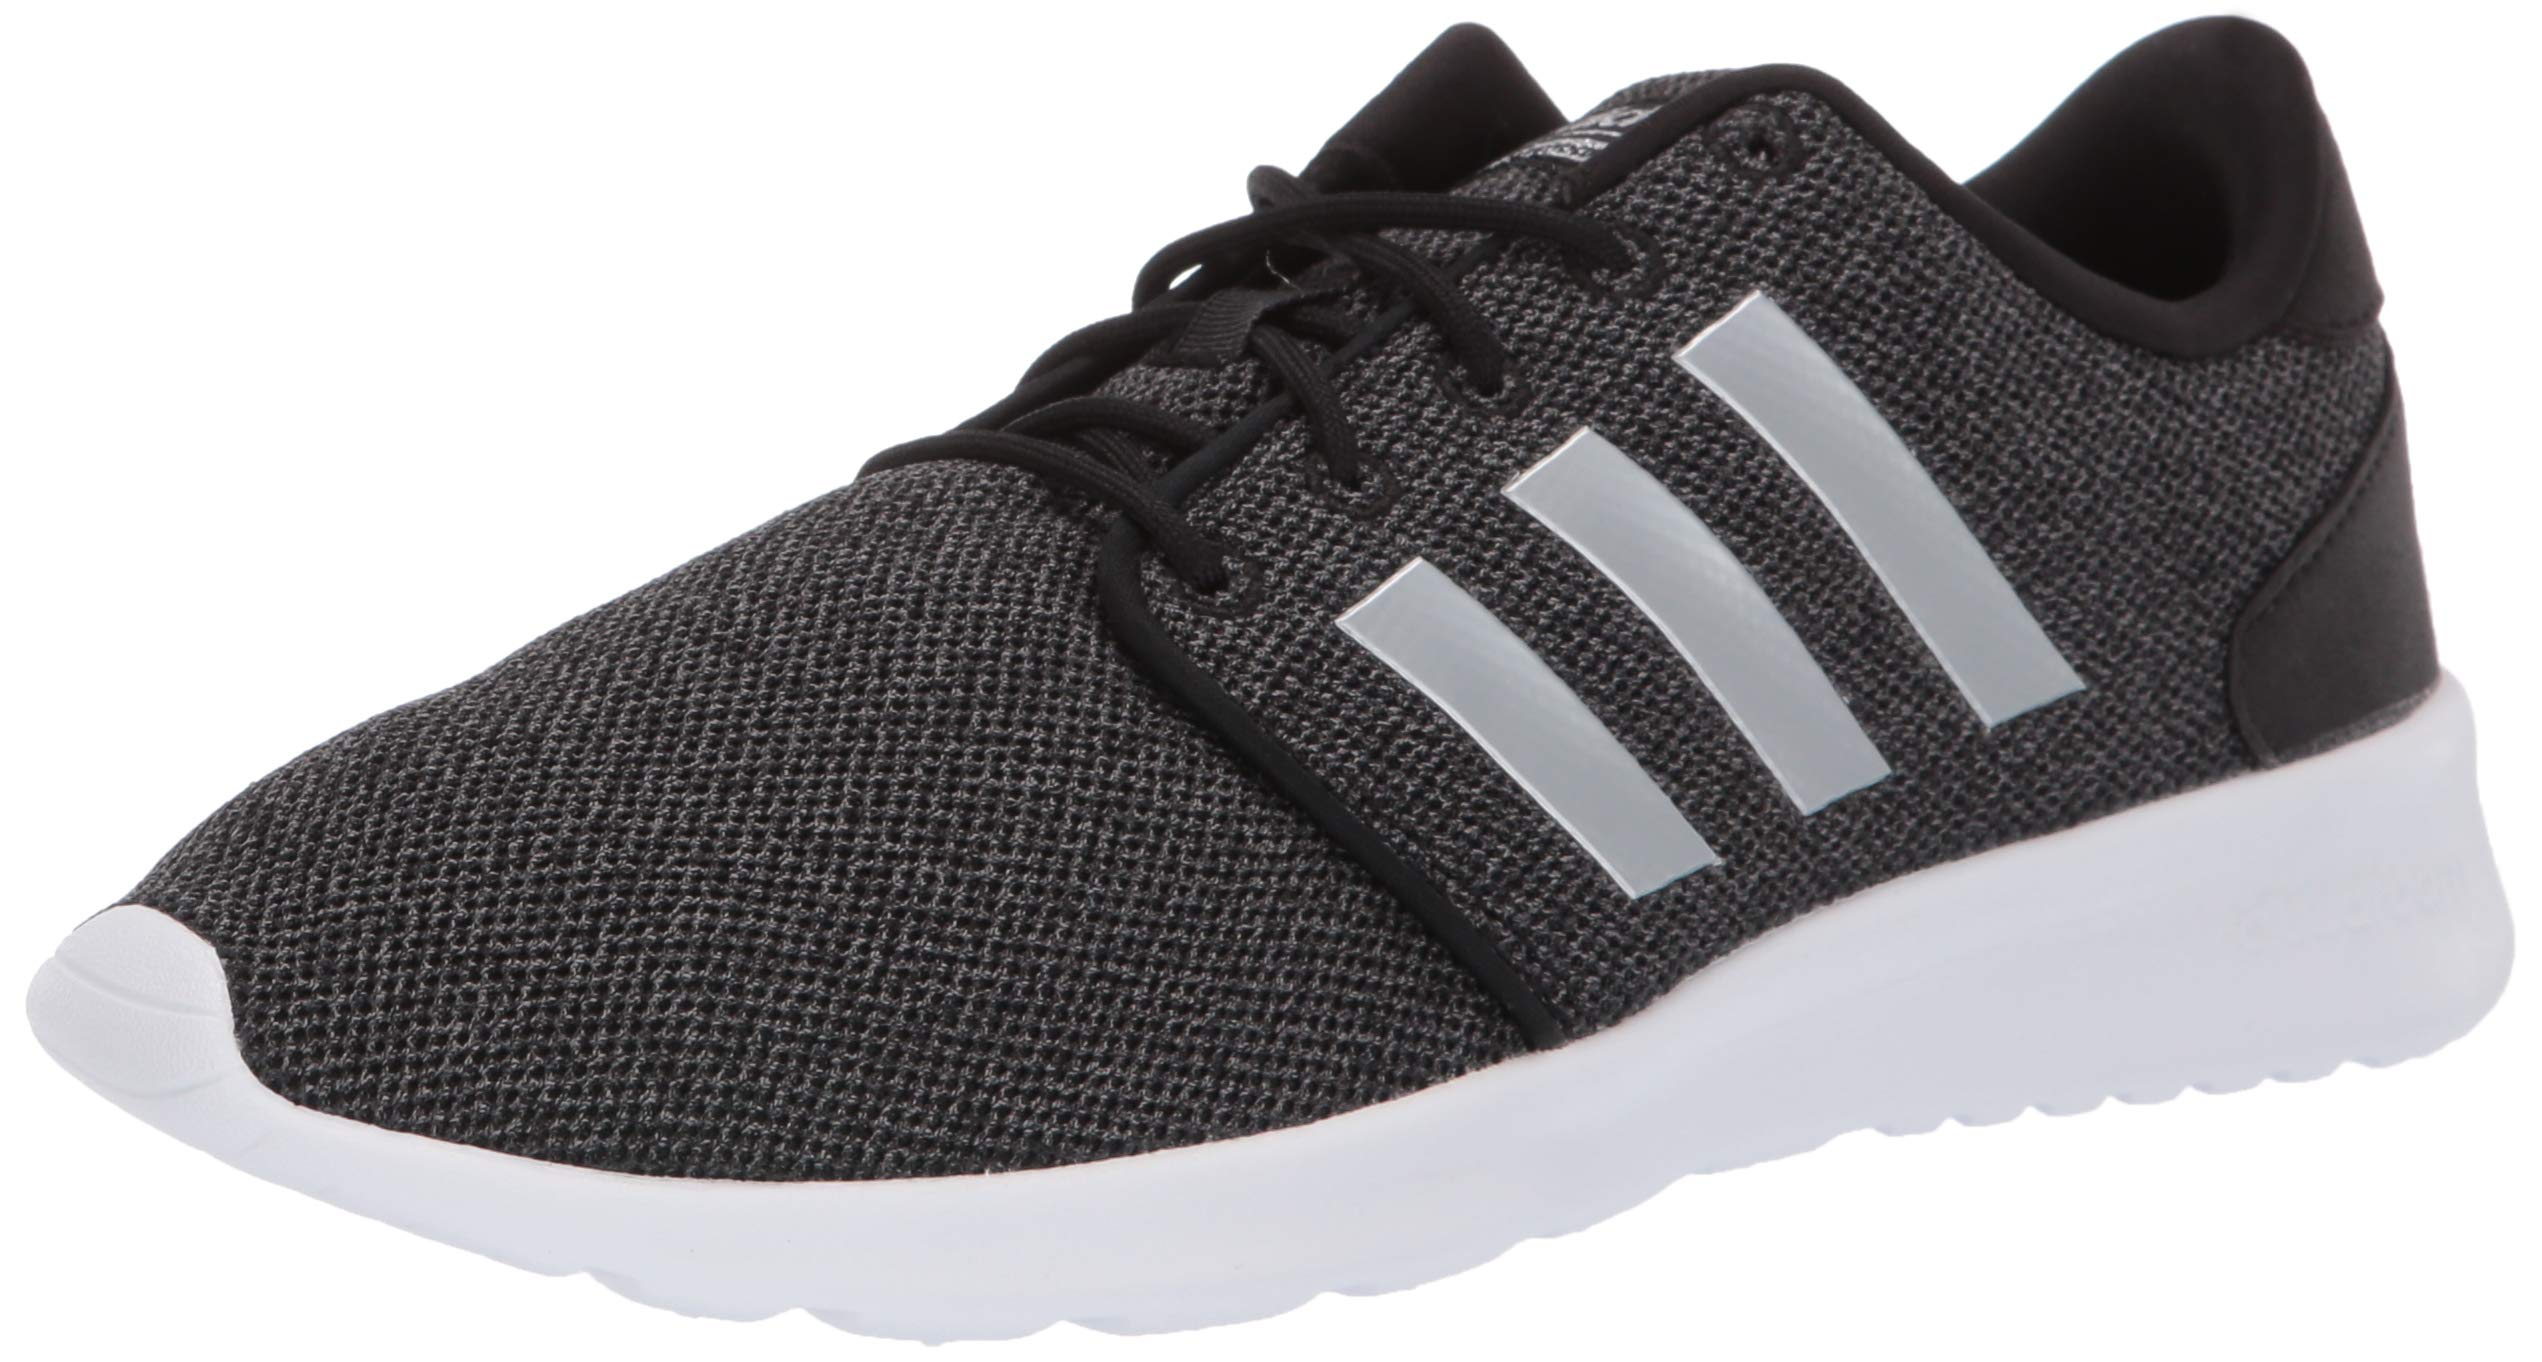 adidas Women's Cloudfoam QT Racer Running Shoe Sneaker, Black/Silver Metallic/Grey, 9 M US by adidas